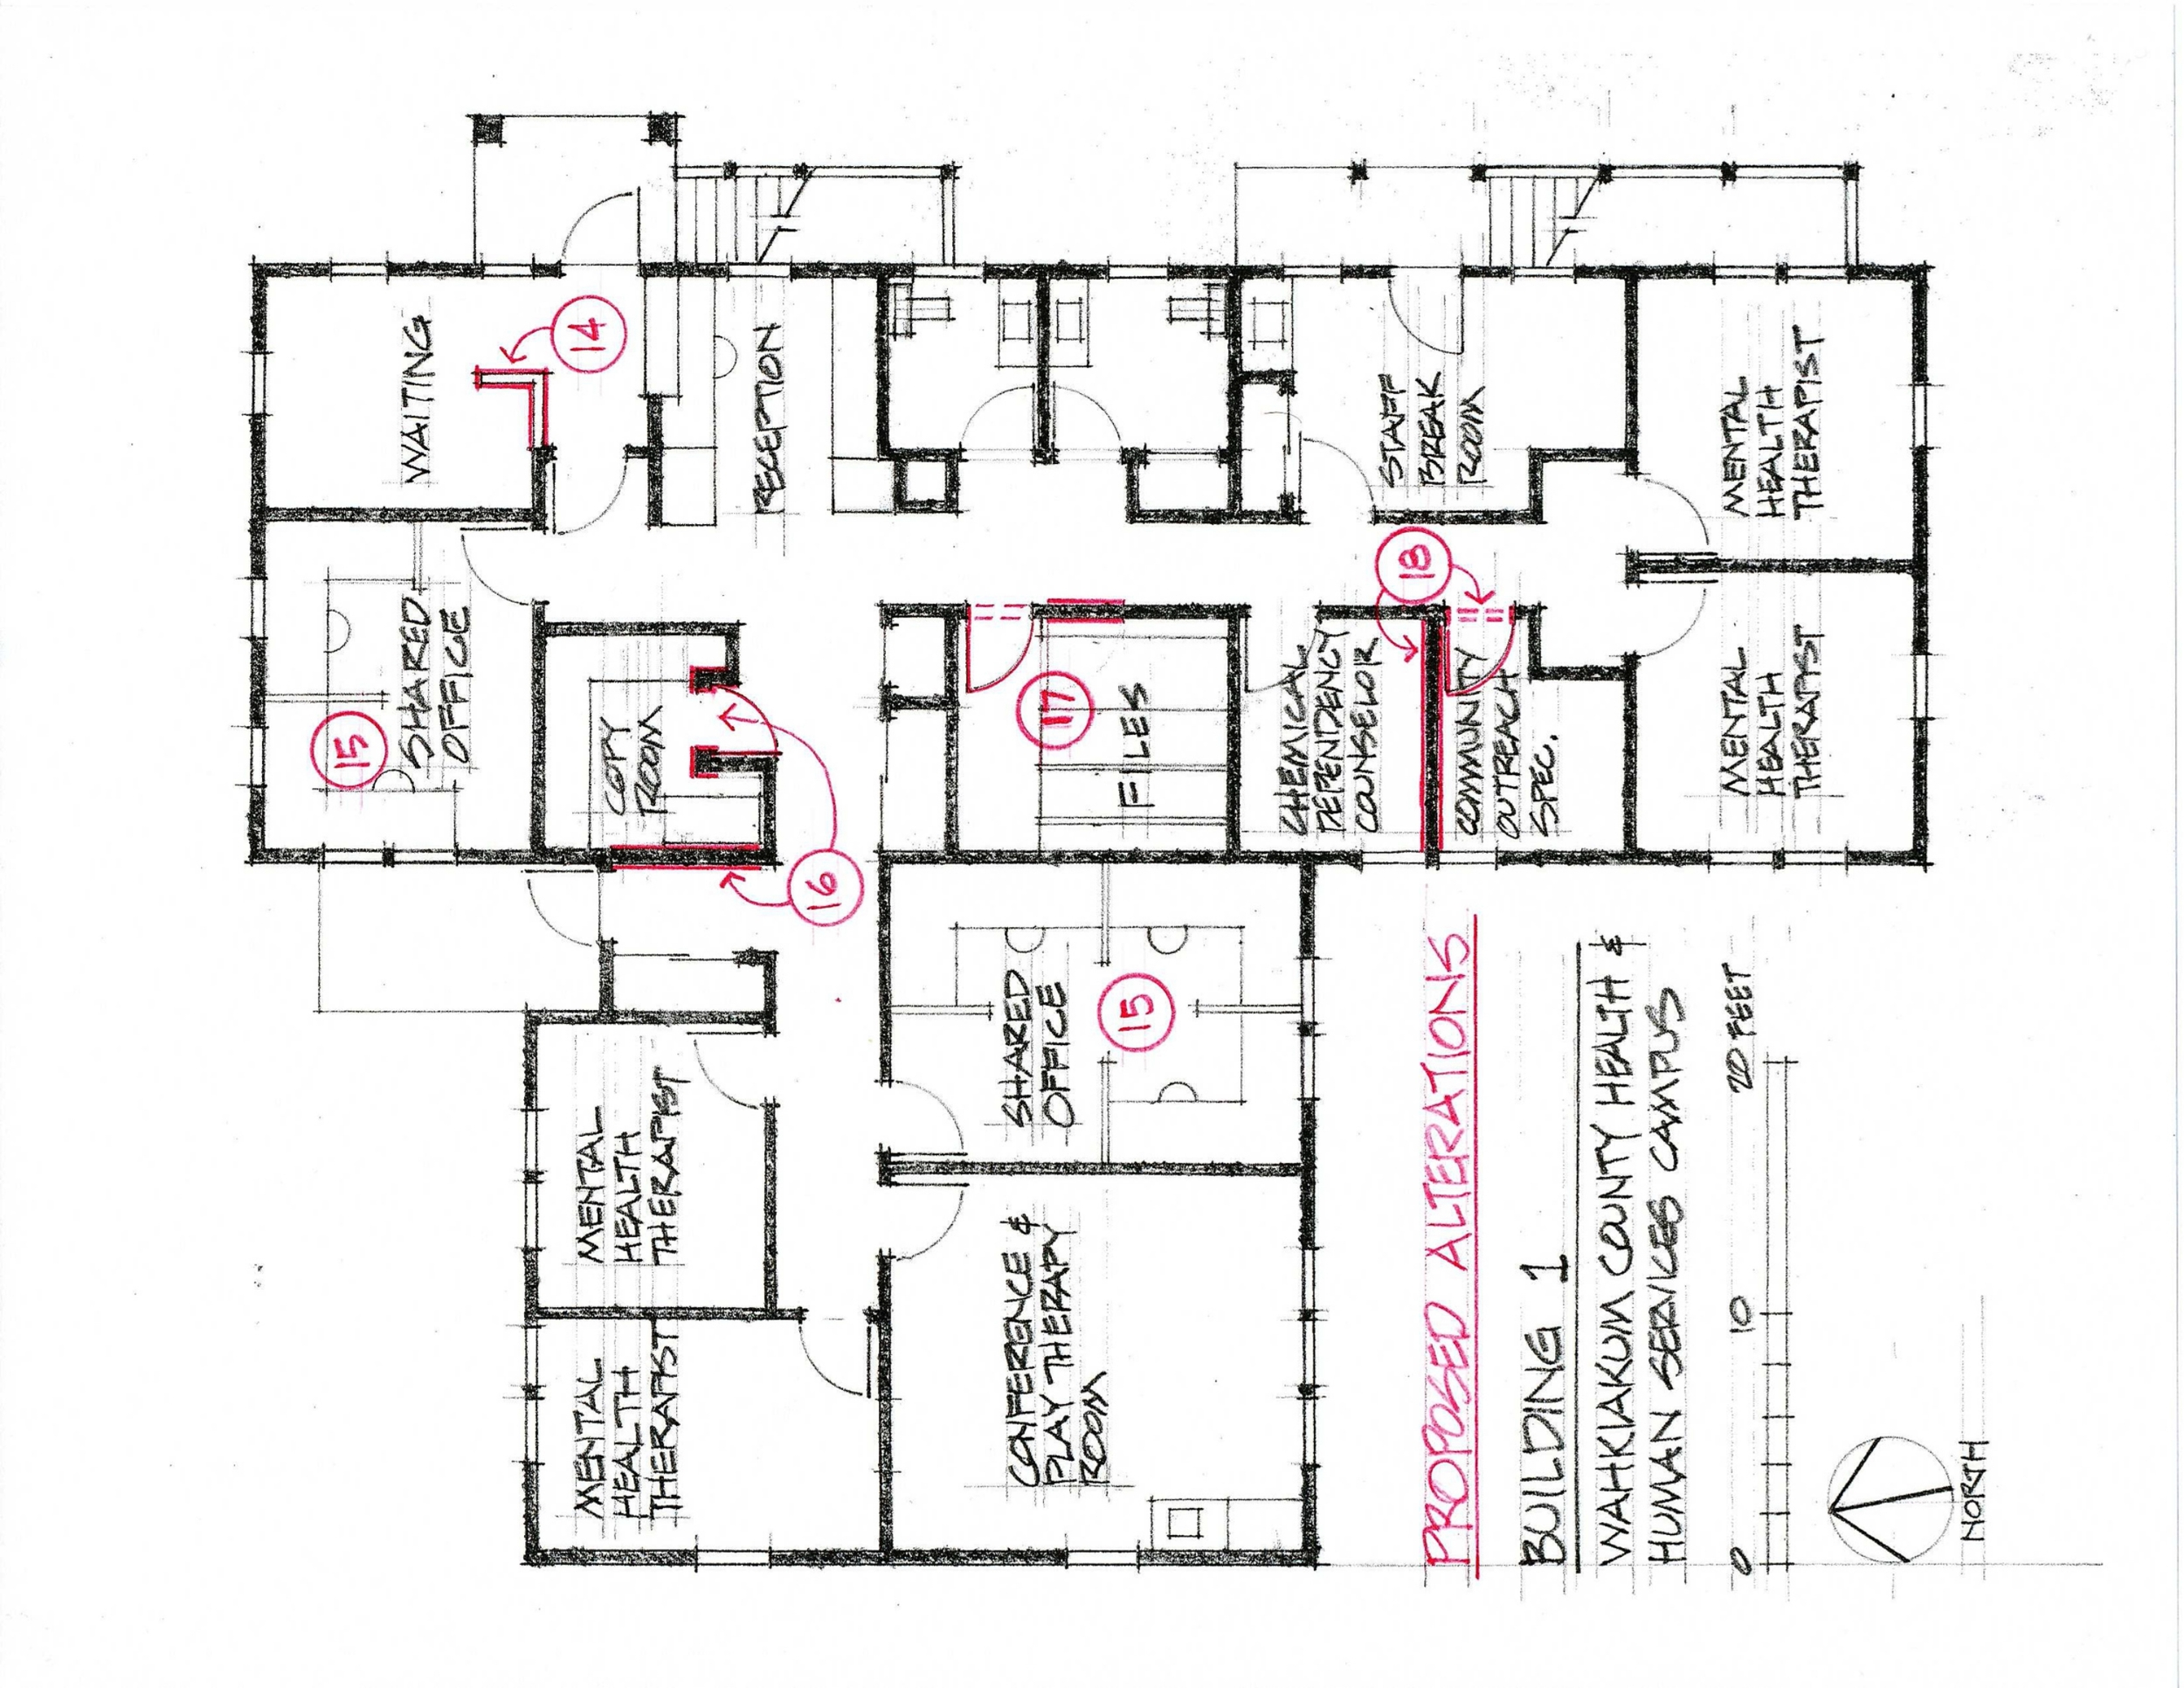 H&HS Facilities Proposed Alterations Drawings12.01.jpg